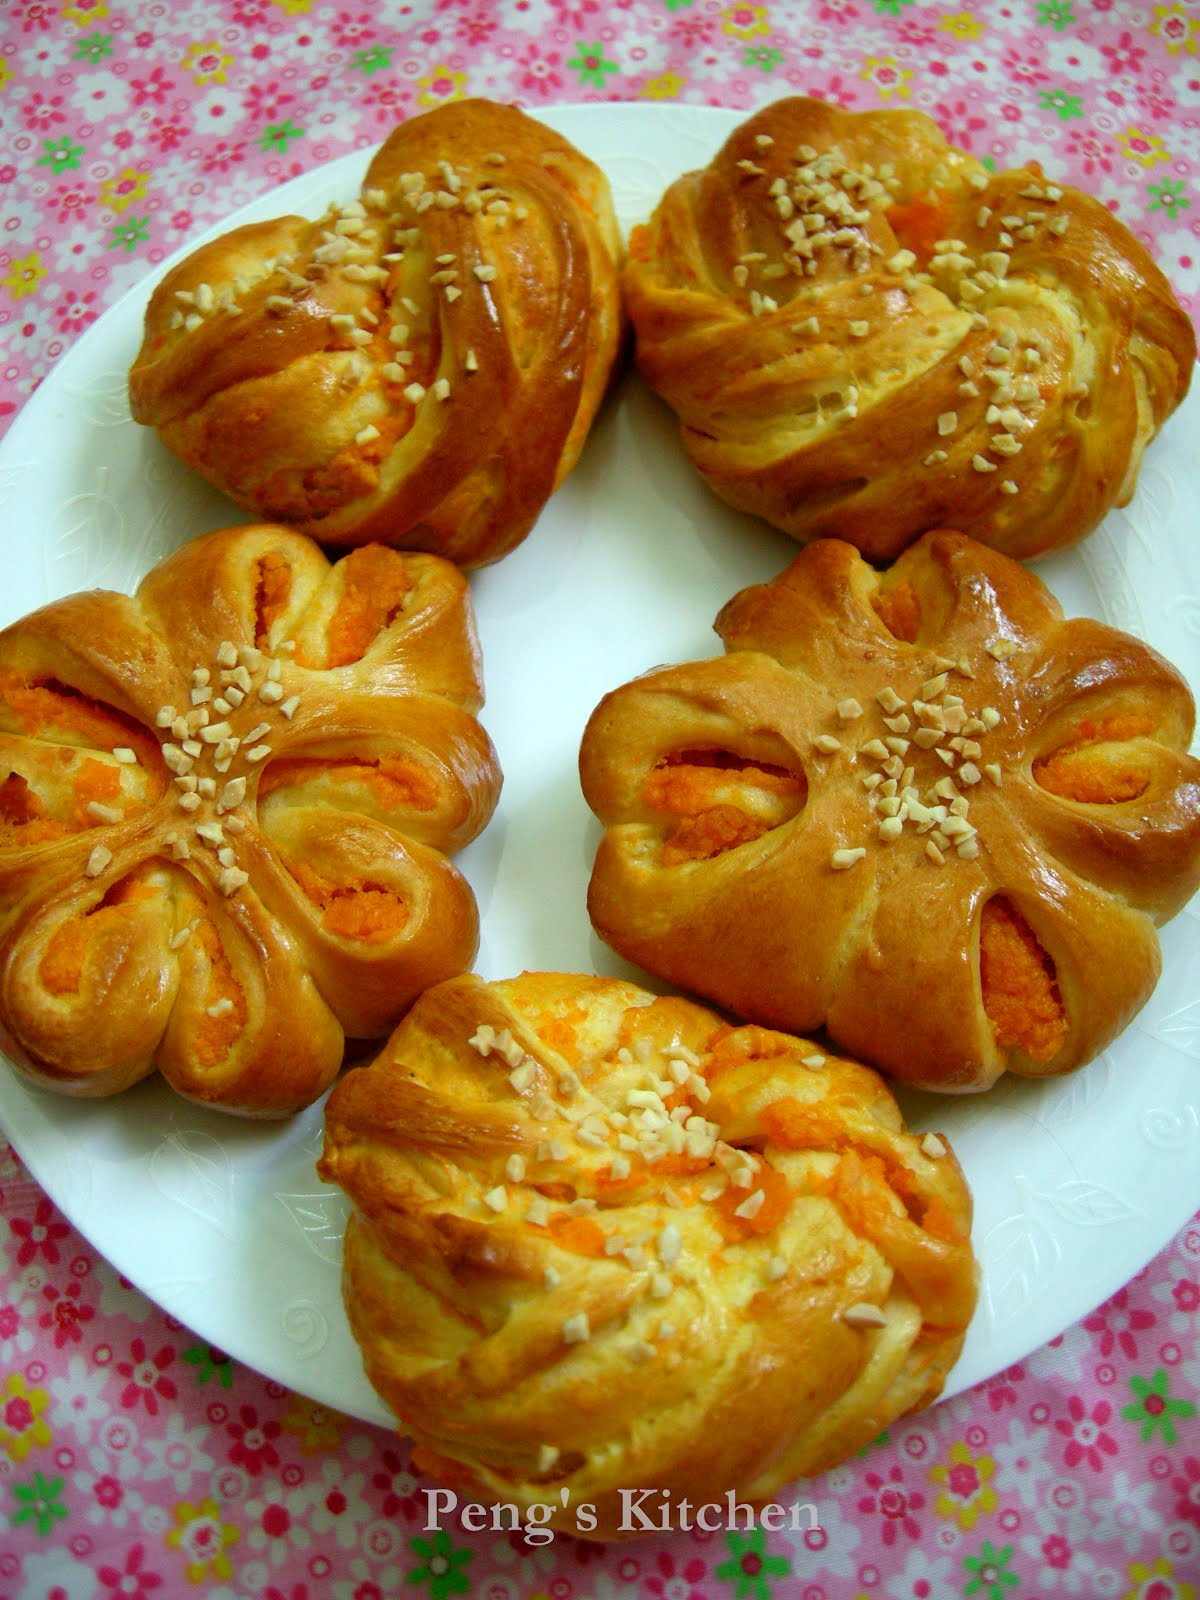 Peng's Kitchen: Sweet Potato Buns